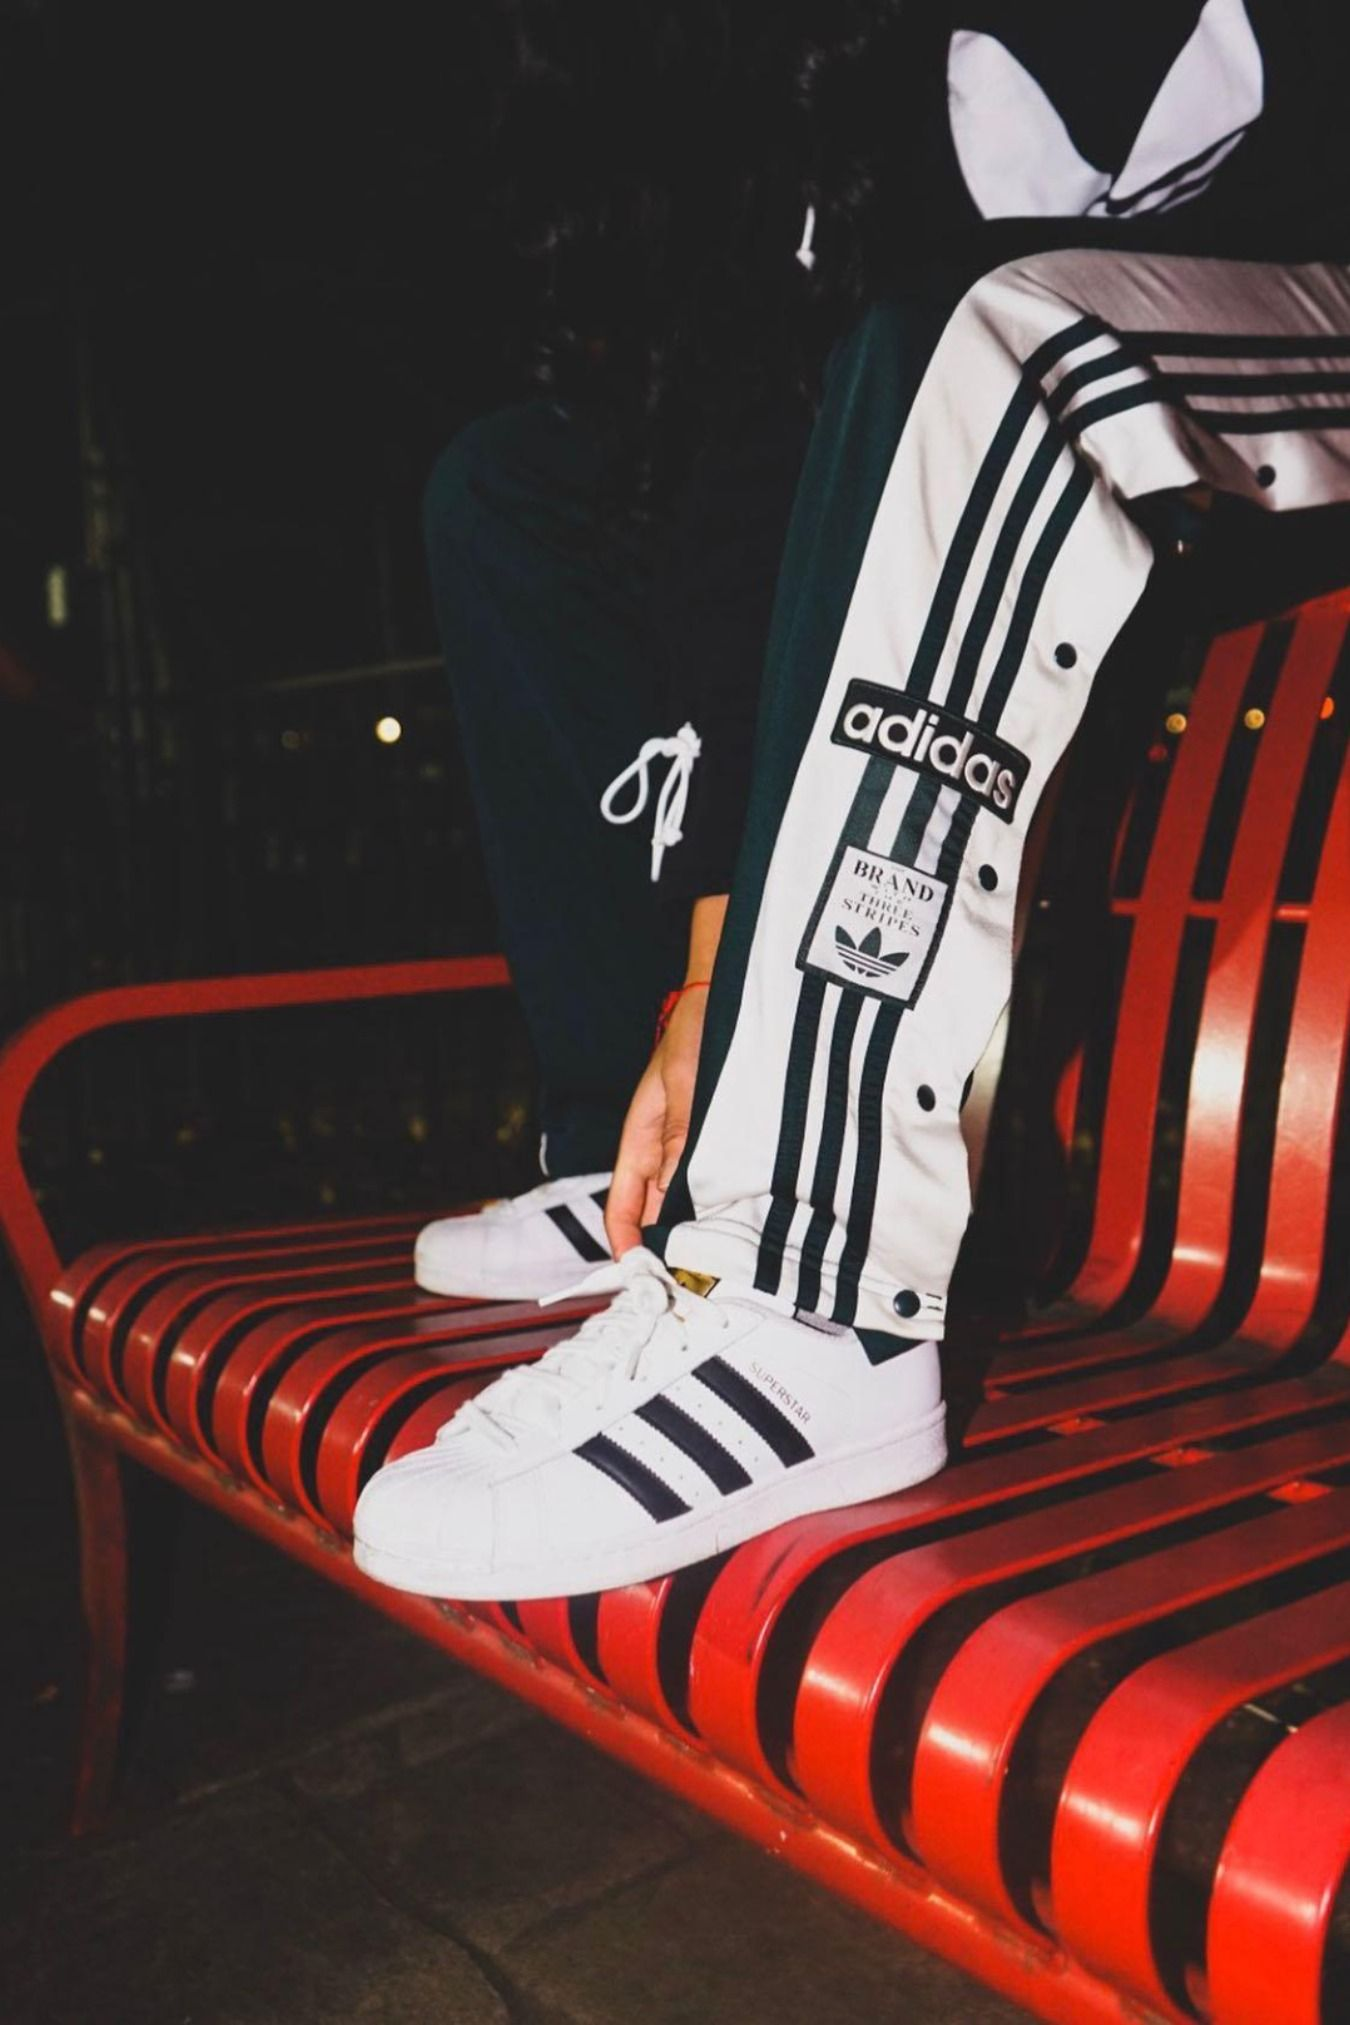 Since day one, the iconic shell toe of the adidas Superstar has stood for those who make a difference in their court. The adidas Superstar Shoes first stepped onto the basketball hardwood in 1970. It didn't take long for them to make the leap from athletic gear to streetwear staple.